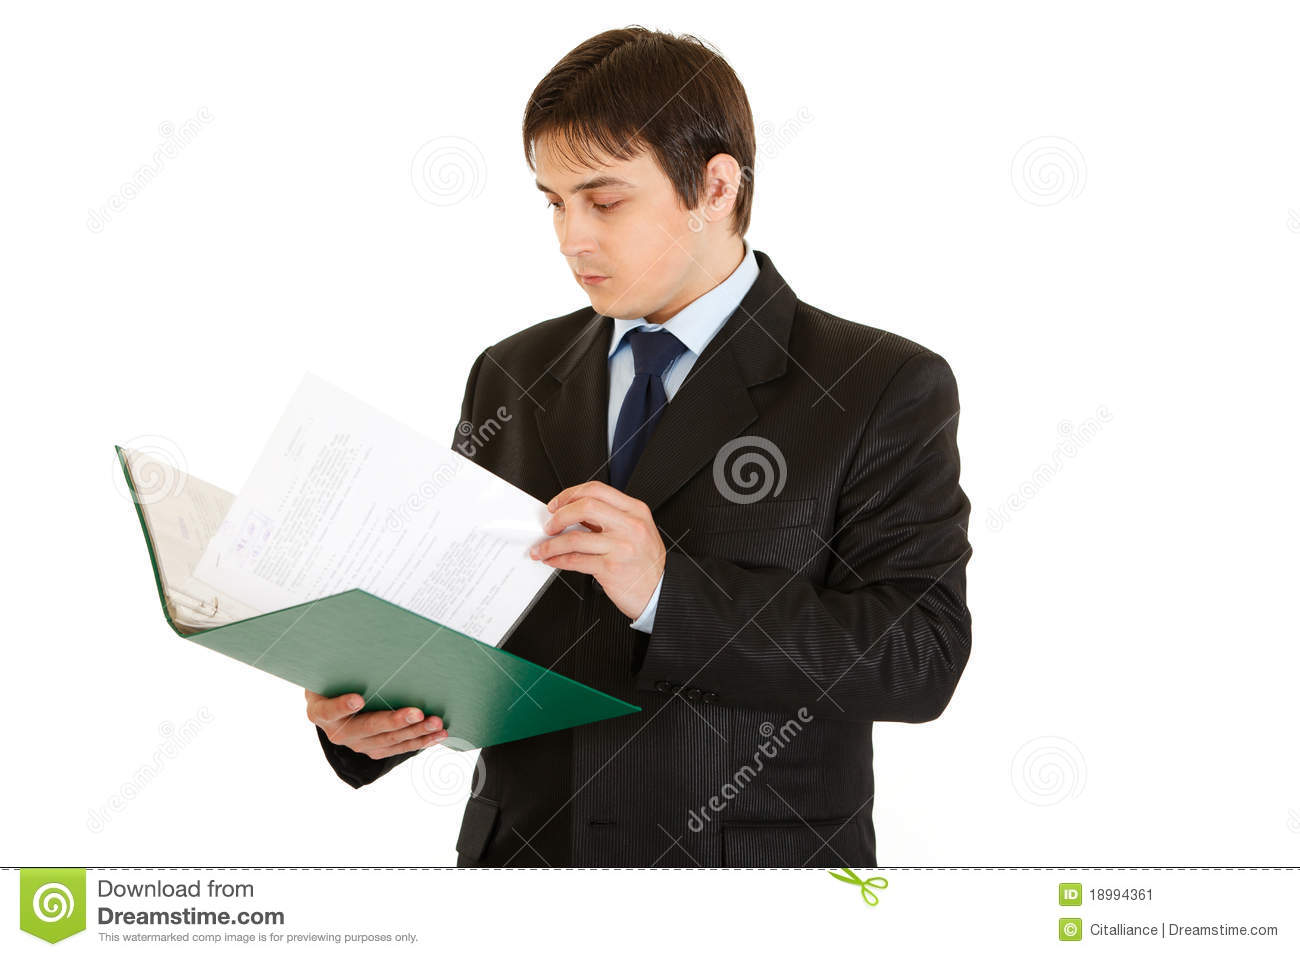 Businessman holding folder and checking documents